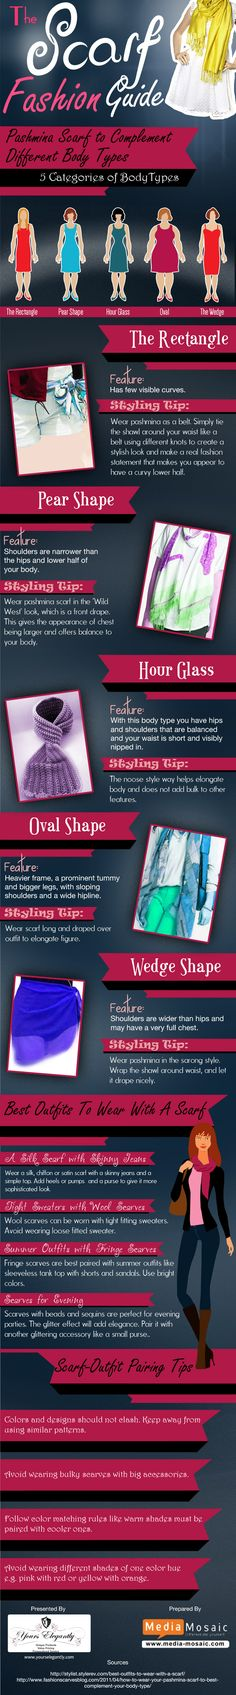 The Scarf Fashion Guide: Time to Flaunt your Persona [Infographic] image The Scarf Fashion Guide Infographic by Yours Elegantly